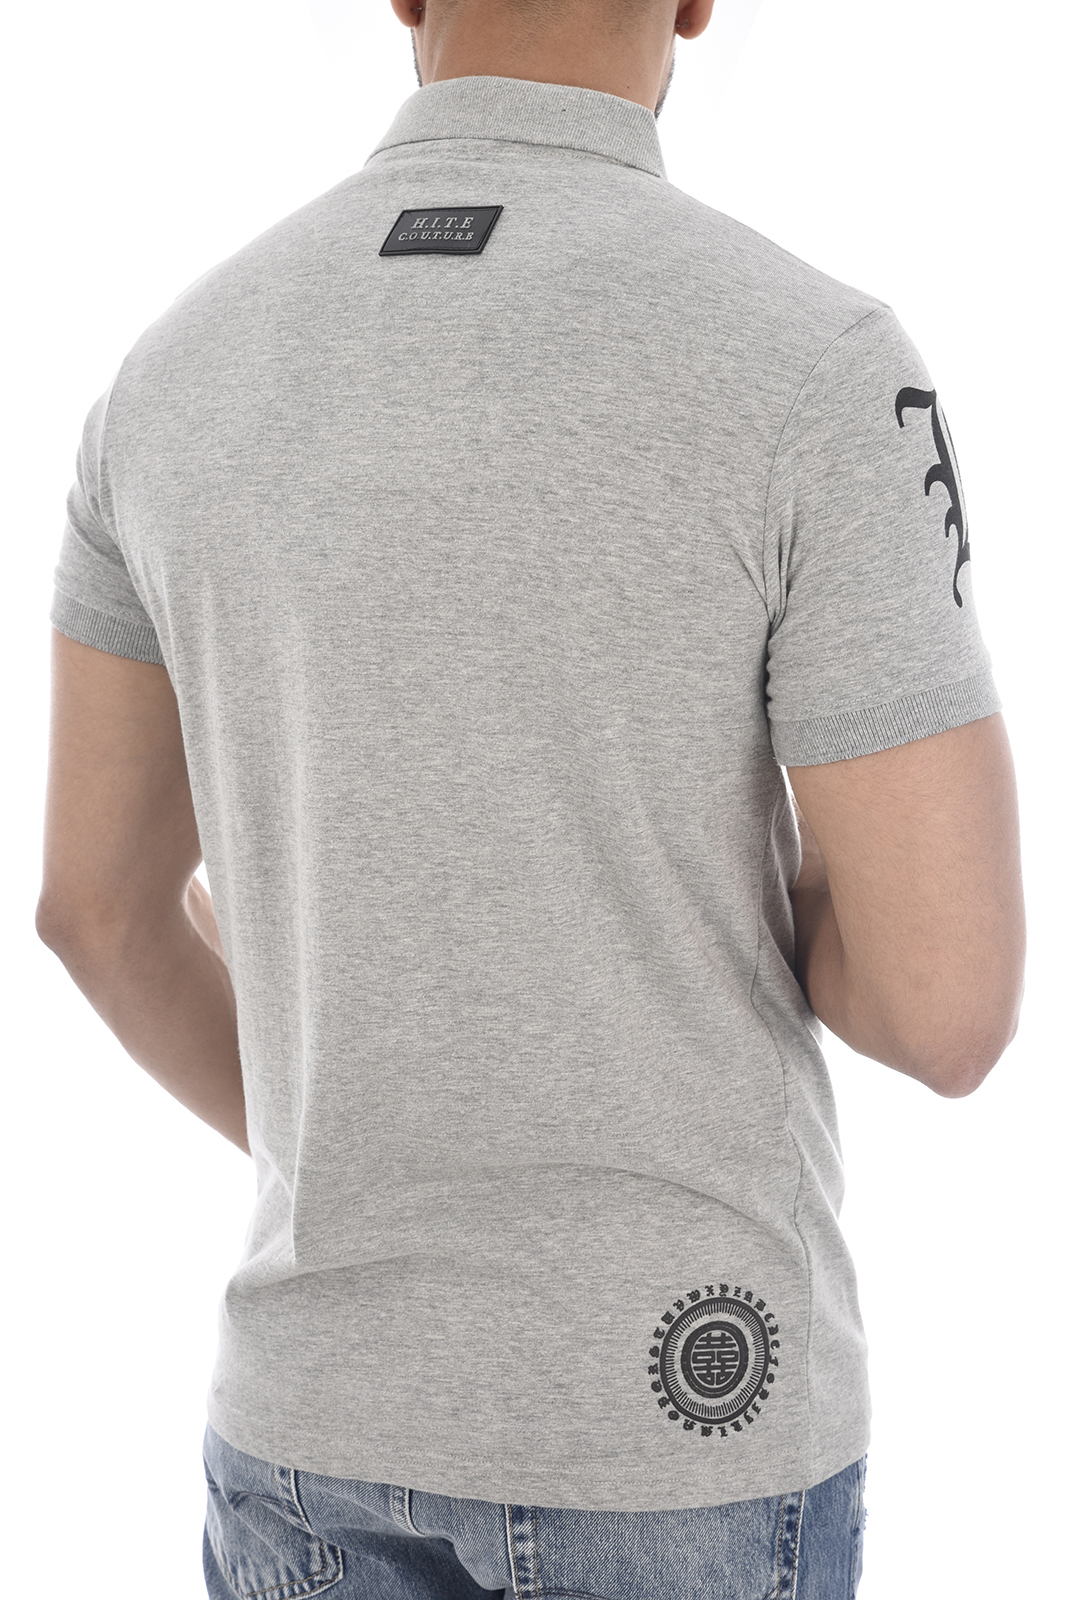 Tee-shirts  Hite couture PIVER GRIS